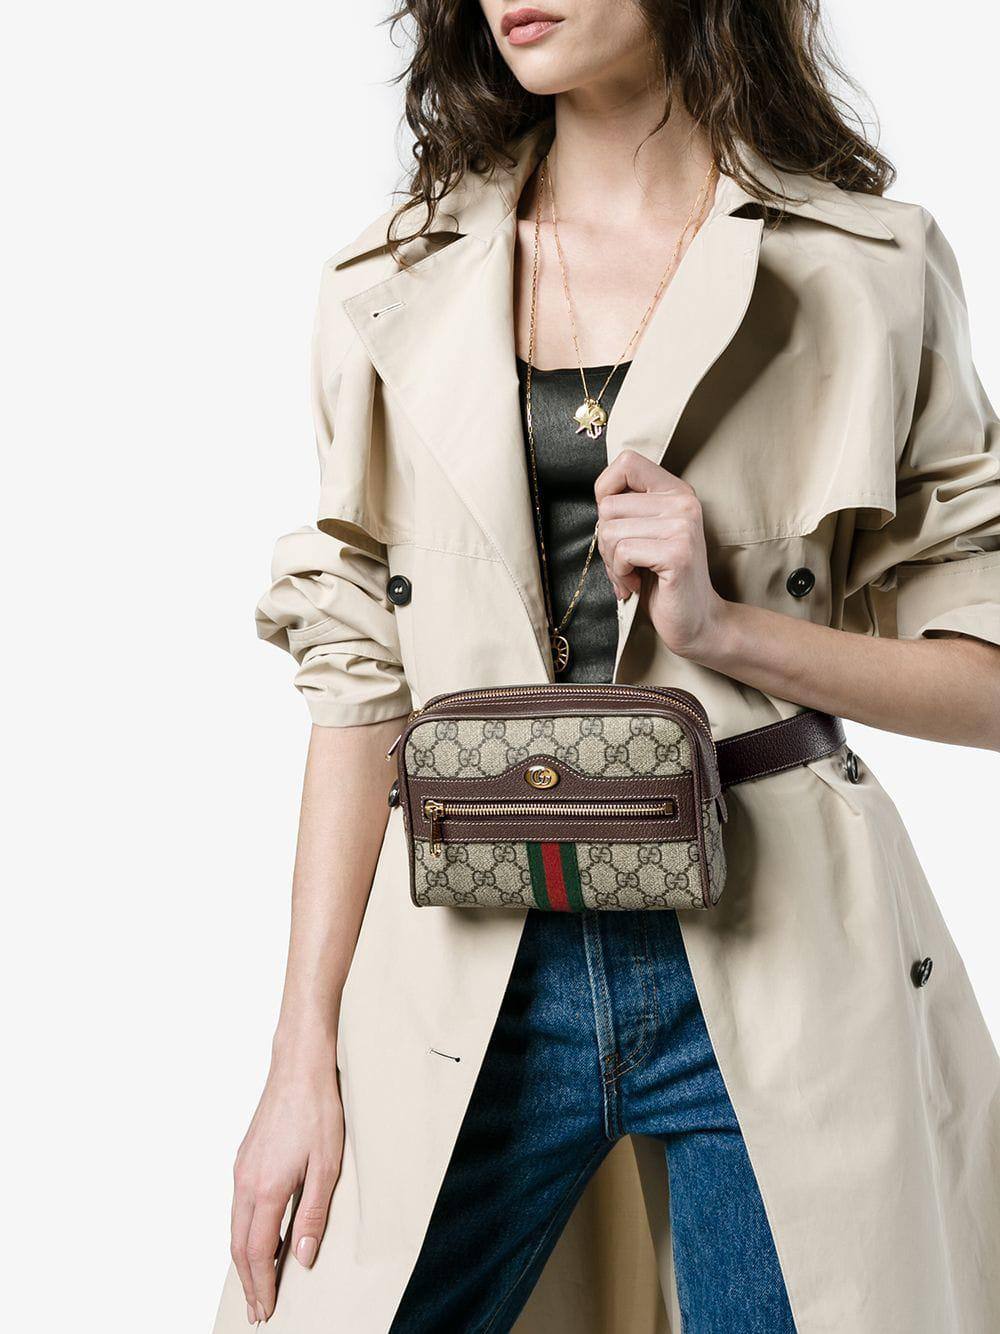 4023cc8a4e8a Lyst - Gucci Brown Ophidia GG Supreme Small Belt Bag in Brown - Save 15%